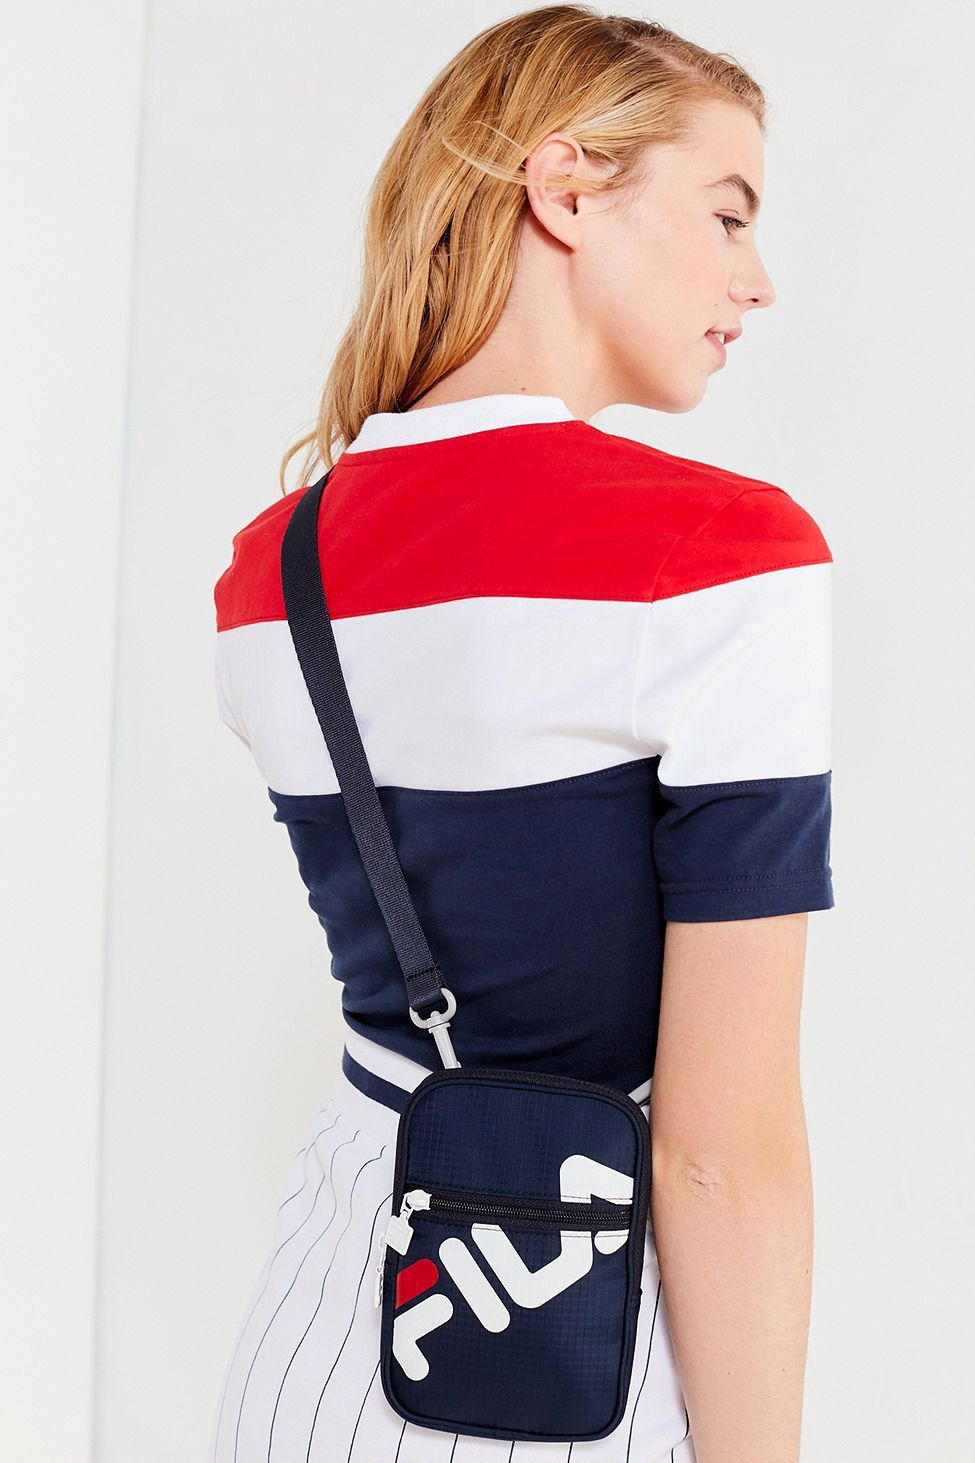 Urban Outfitters Fila Camera Crossbody Bag - Navy One Size ... d659e54e25